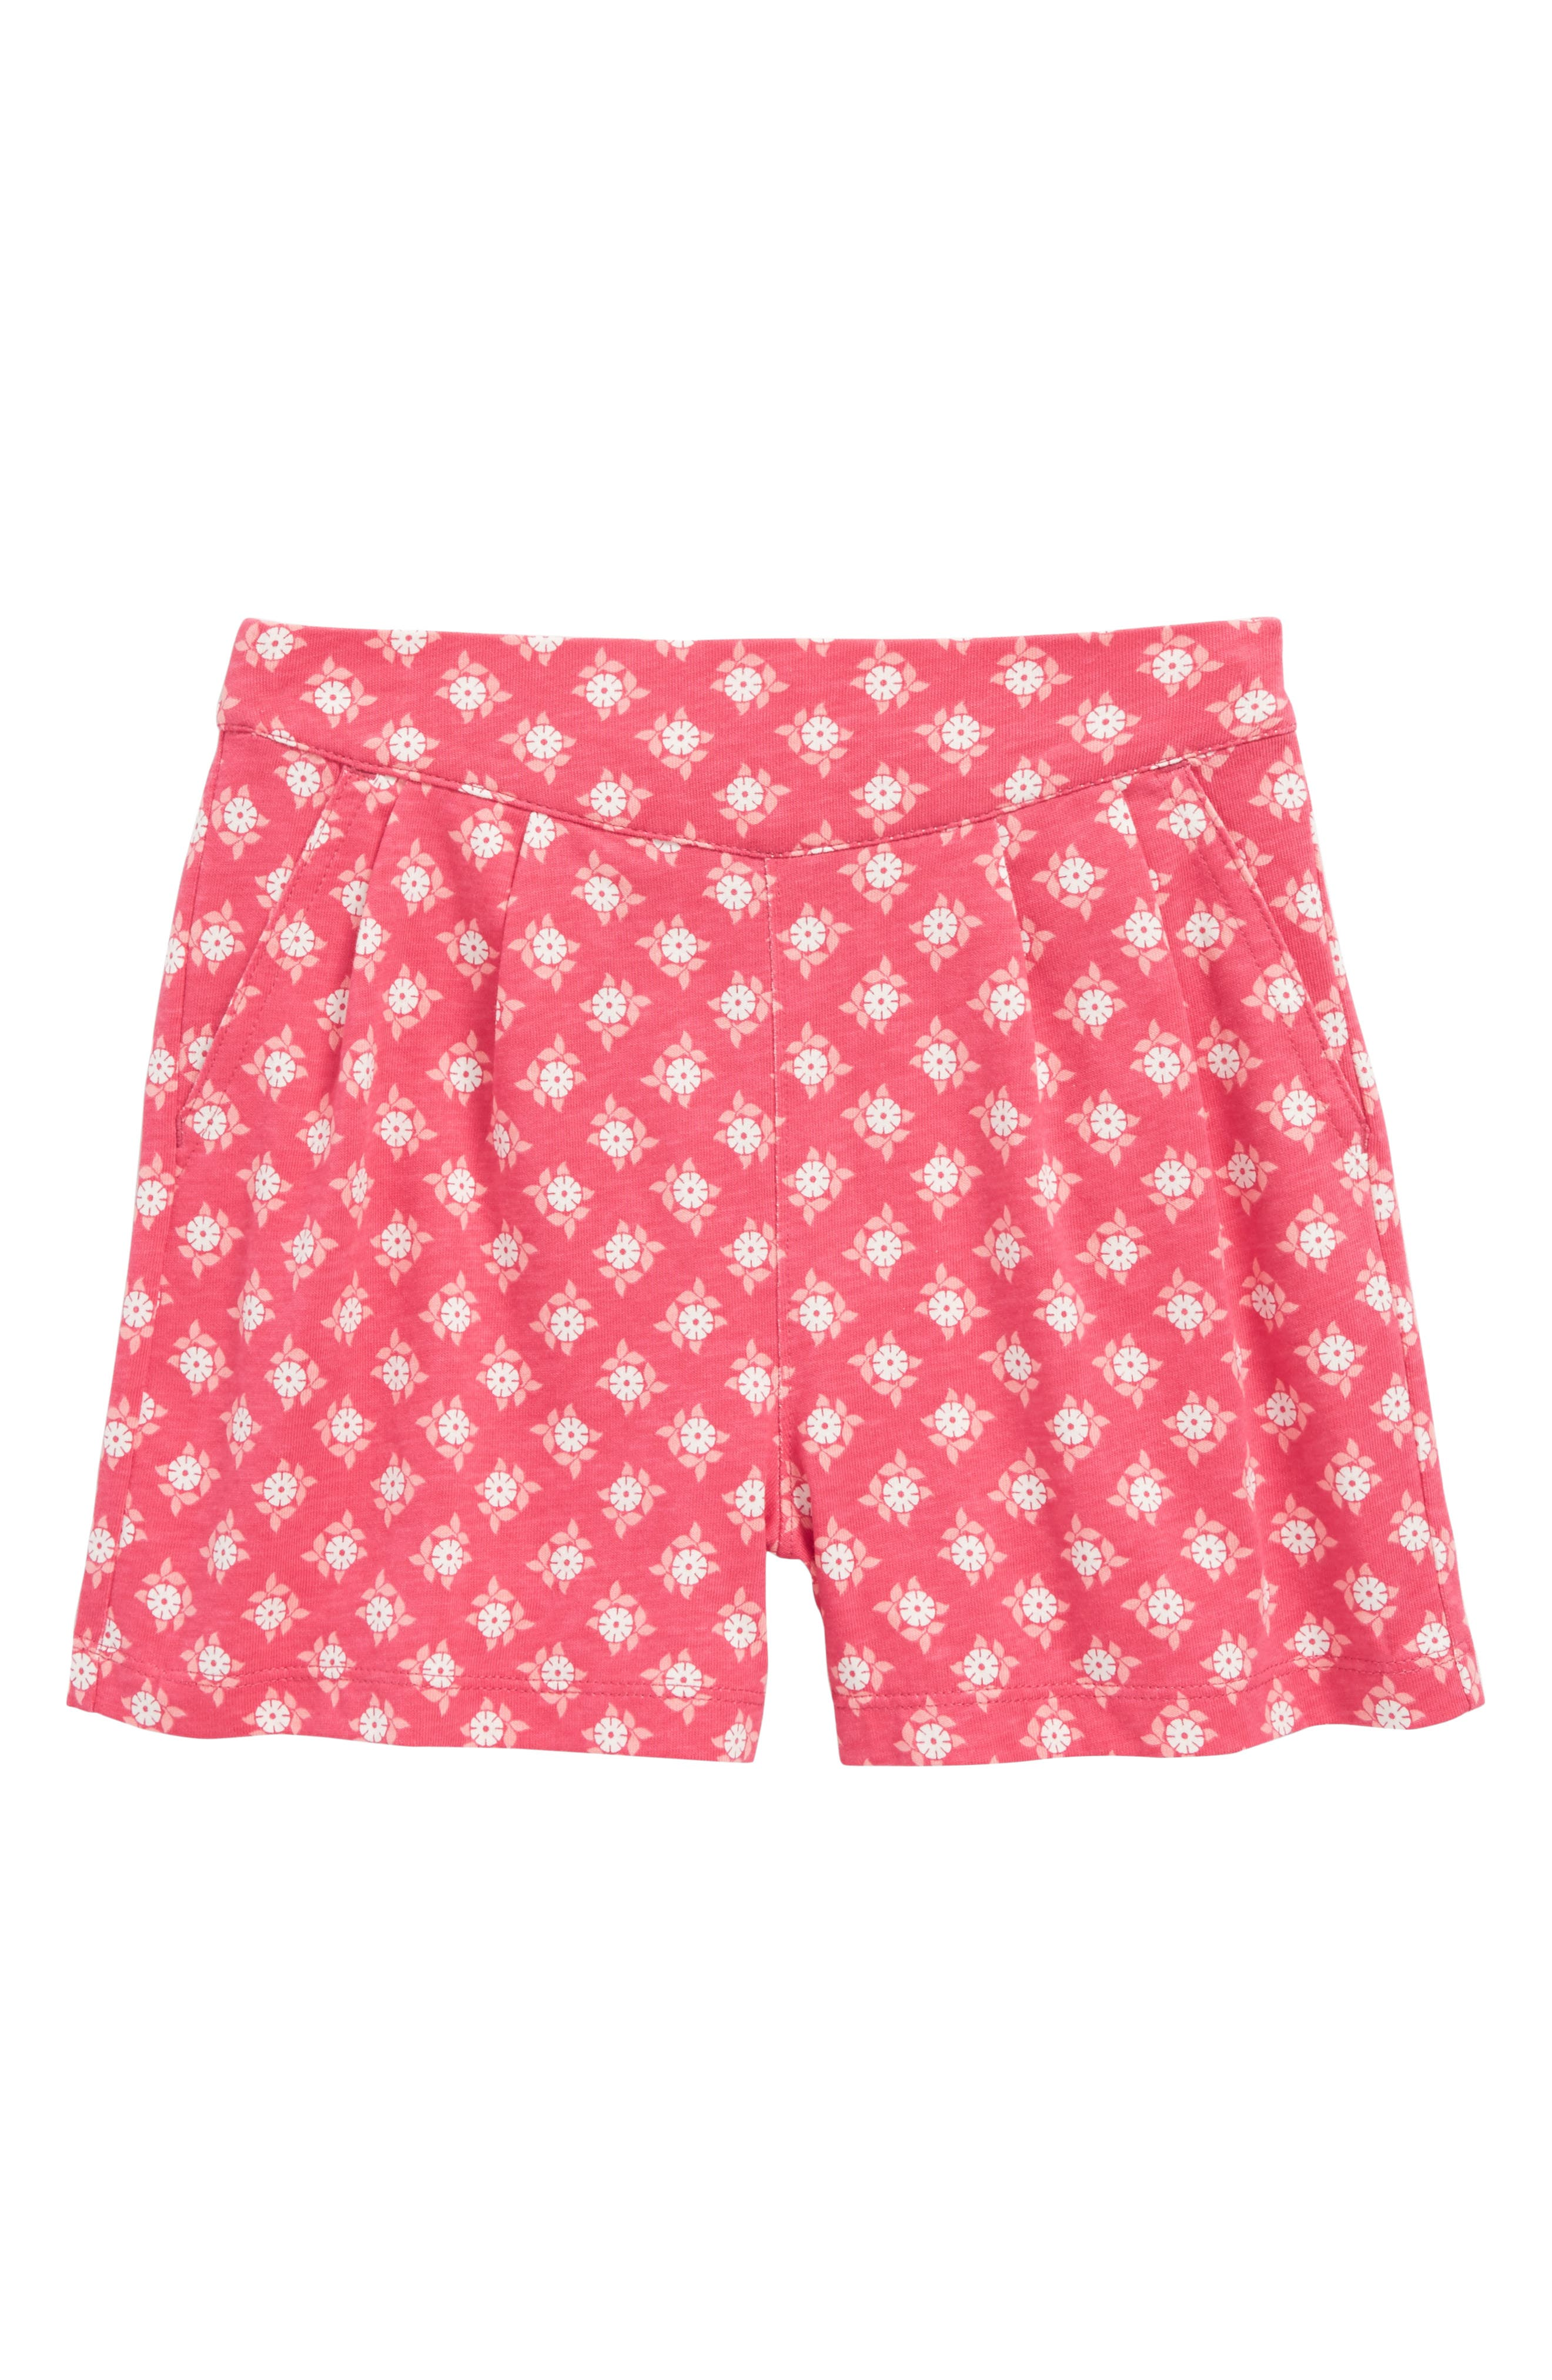 Main Image - Tea Collection Sunburst Deck Shorts (Toddler Girls, Little Girls & Big Girls)